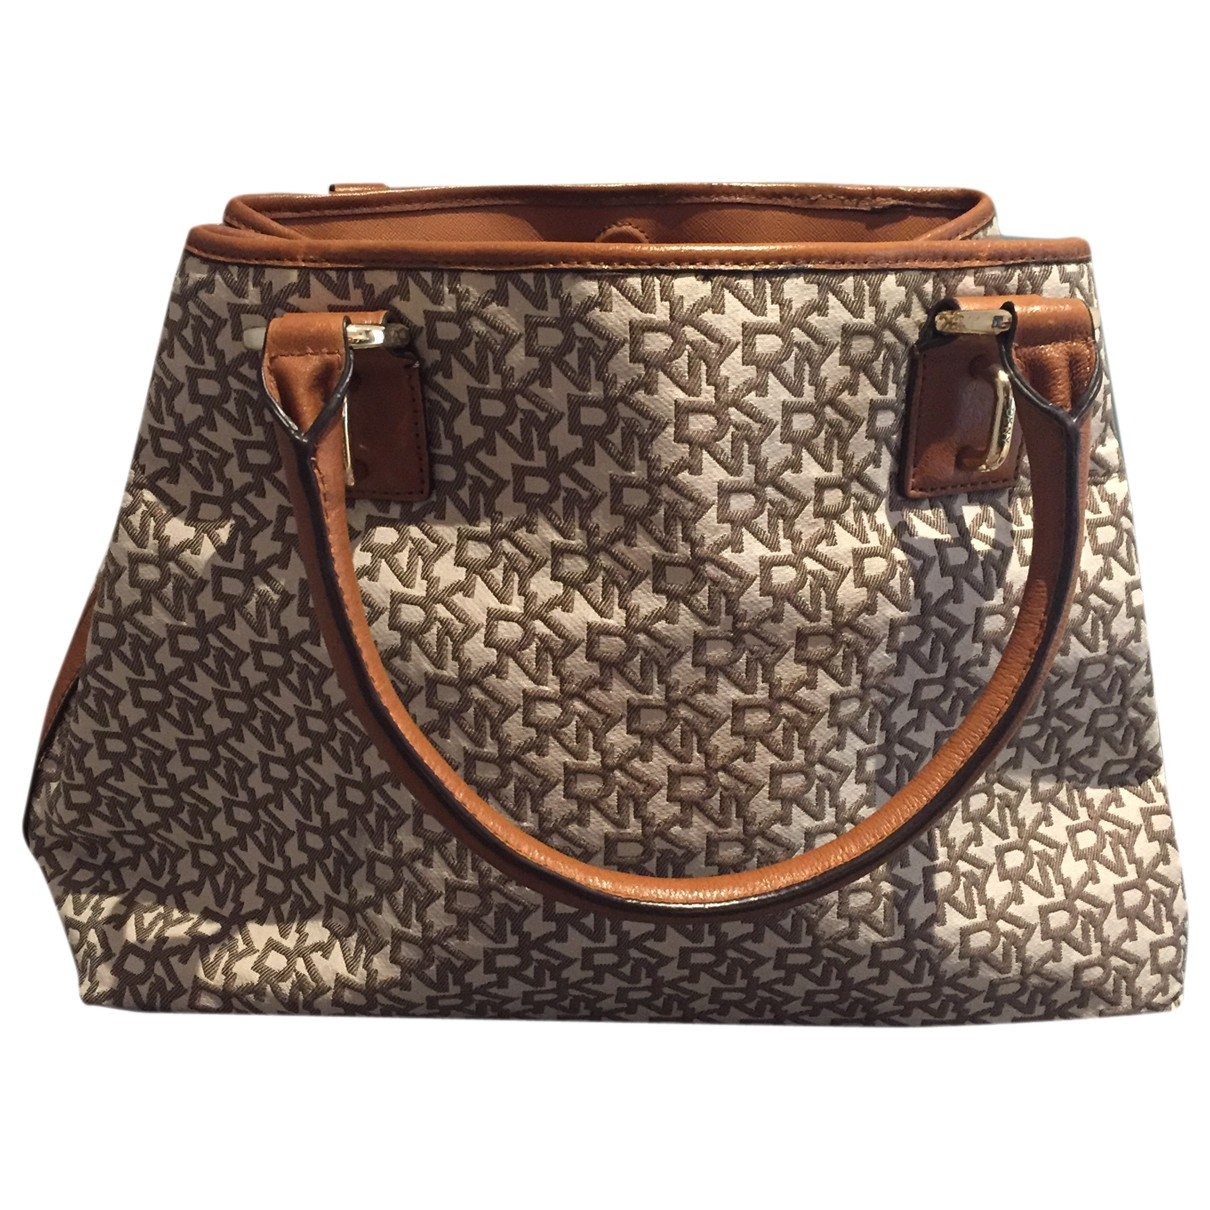 Dkny \N Beige Cloth handbag for Women \N